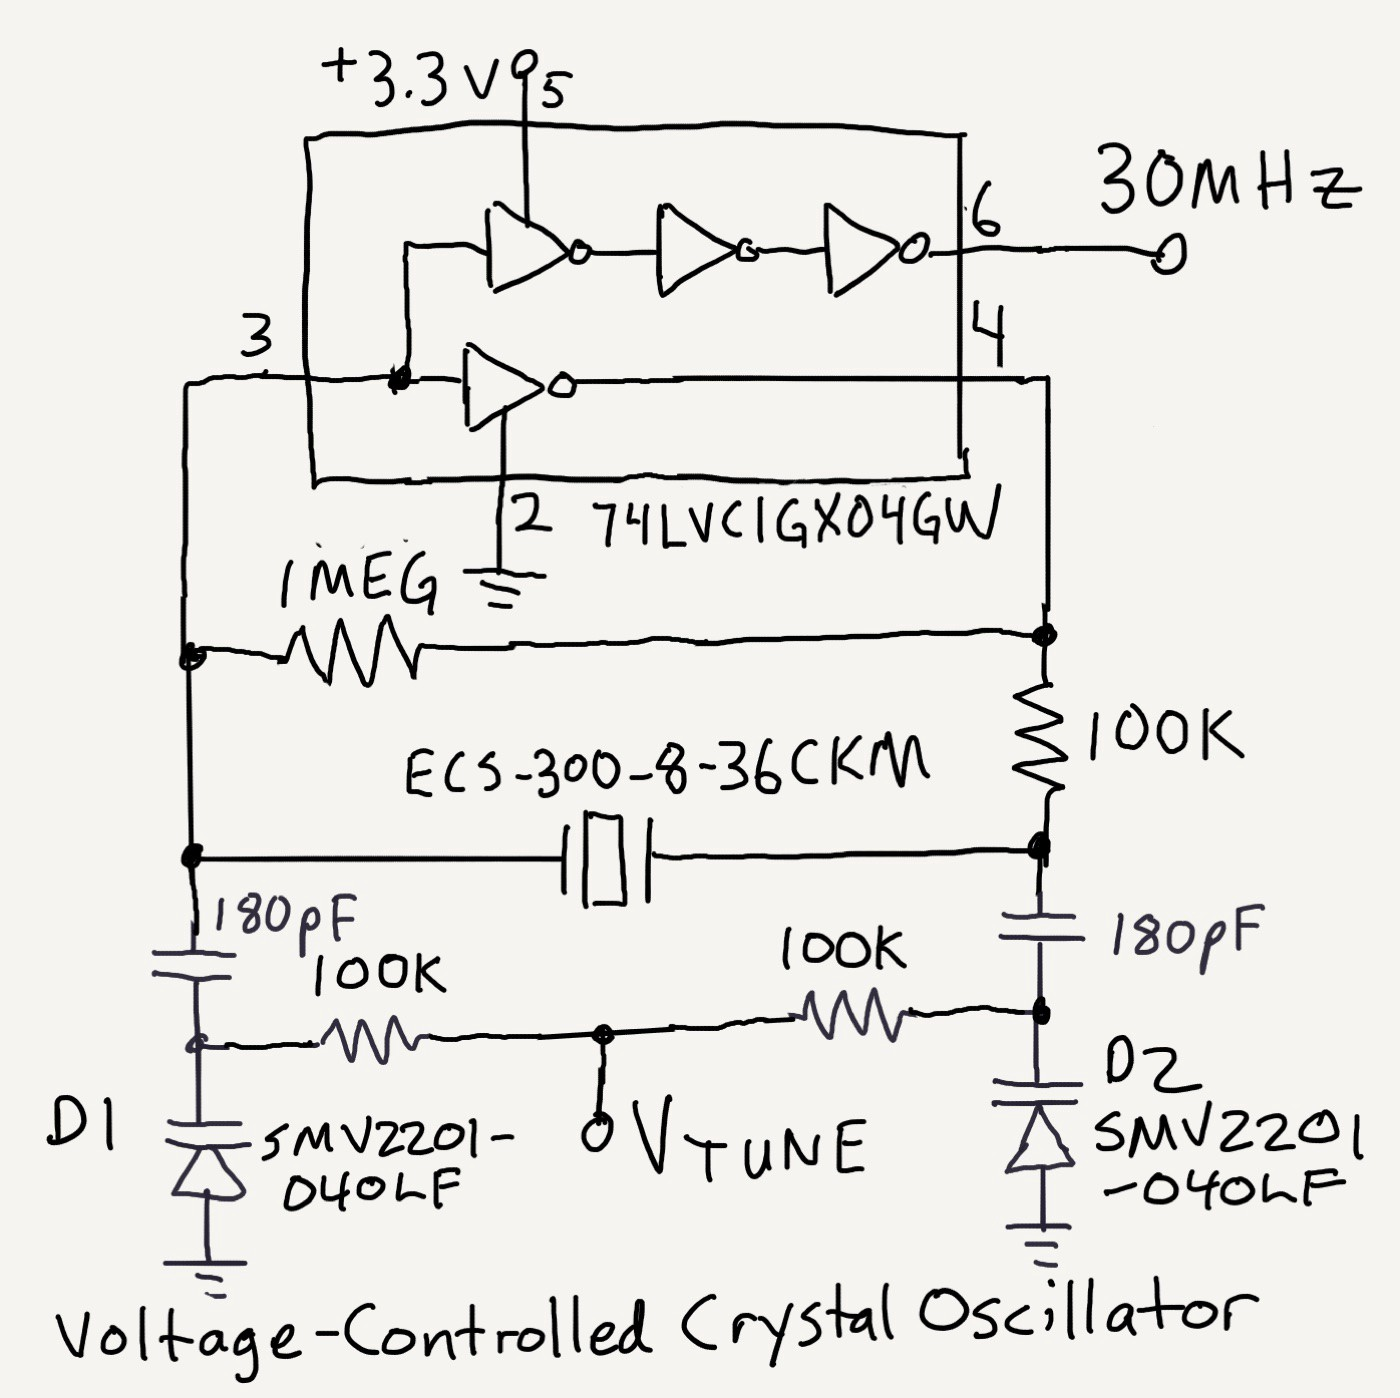 Hello Diodes Tempo Automation Medium Electrical Symbol Typically Used For A Schottky Diode That Is Reverse Biased Has Some Capacitance Varies With Voltage Are Designed To Do This In Predictable Way